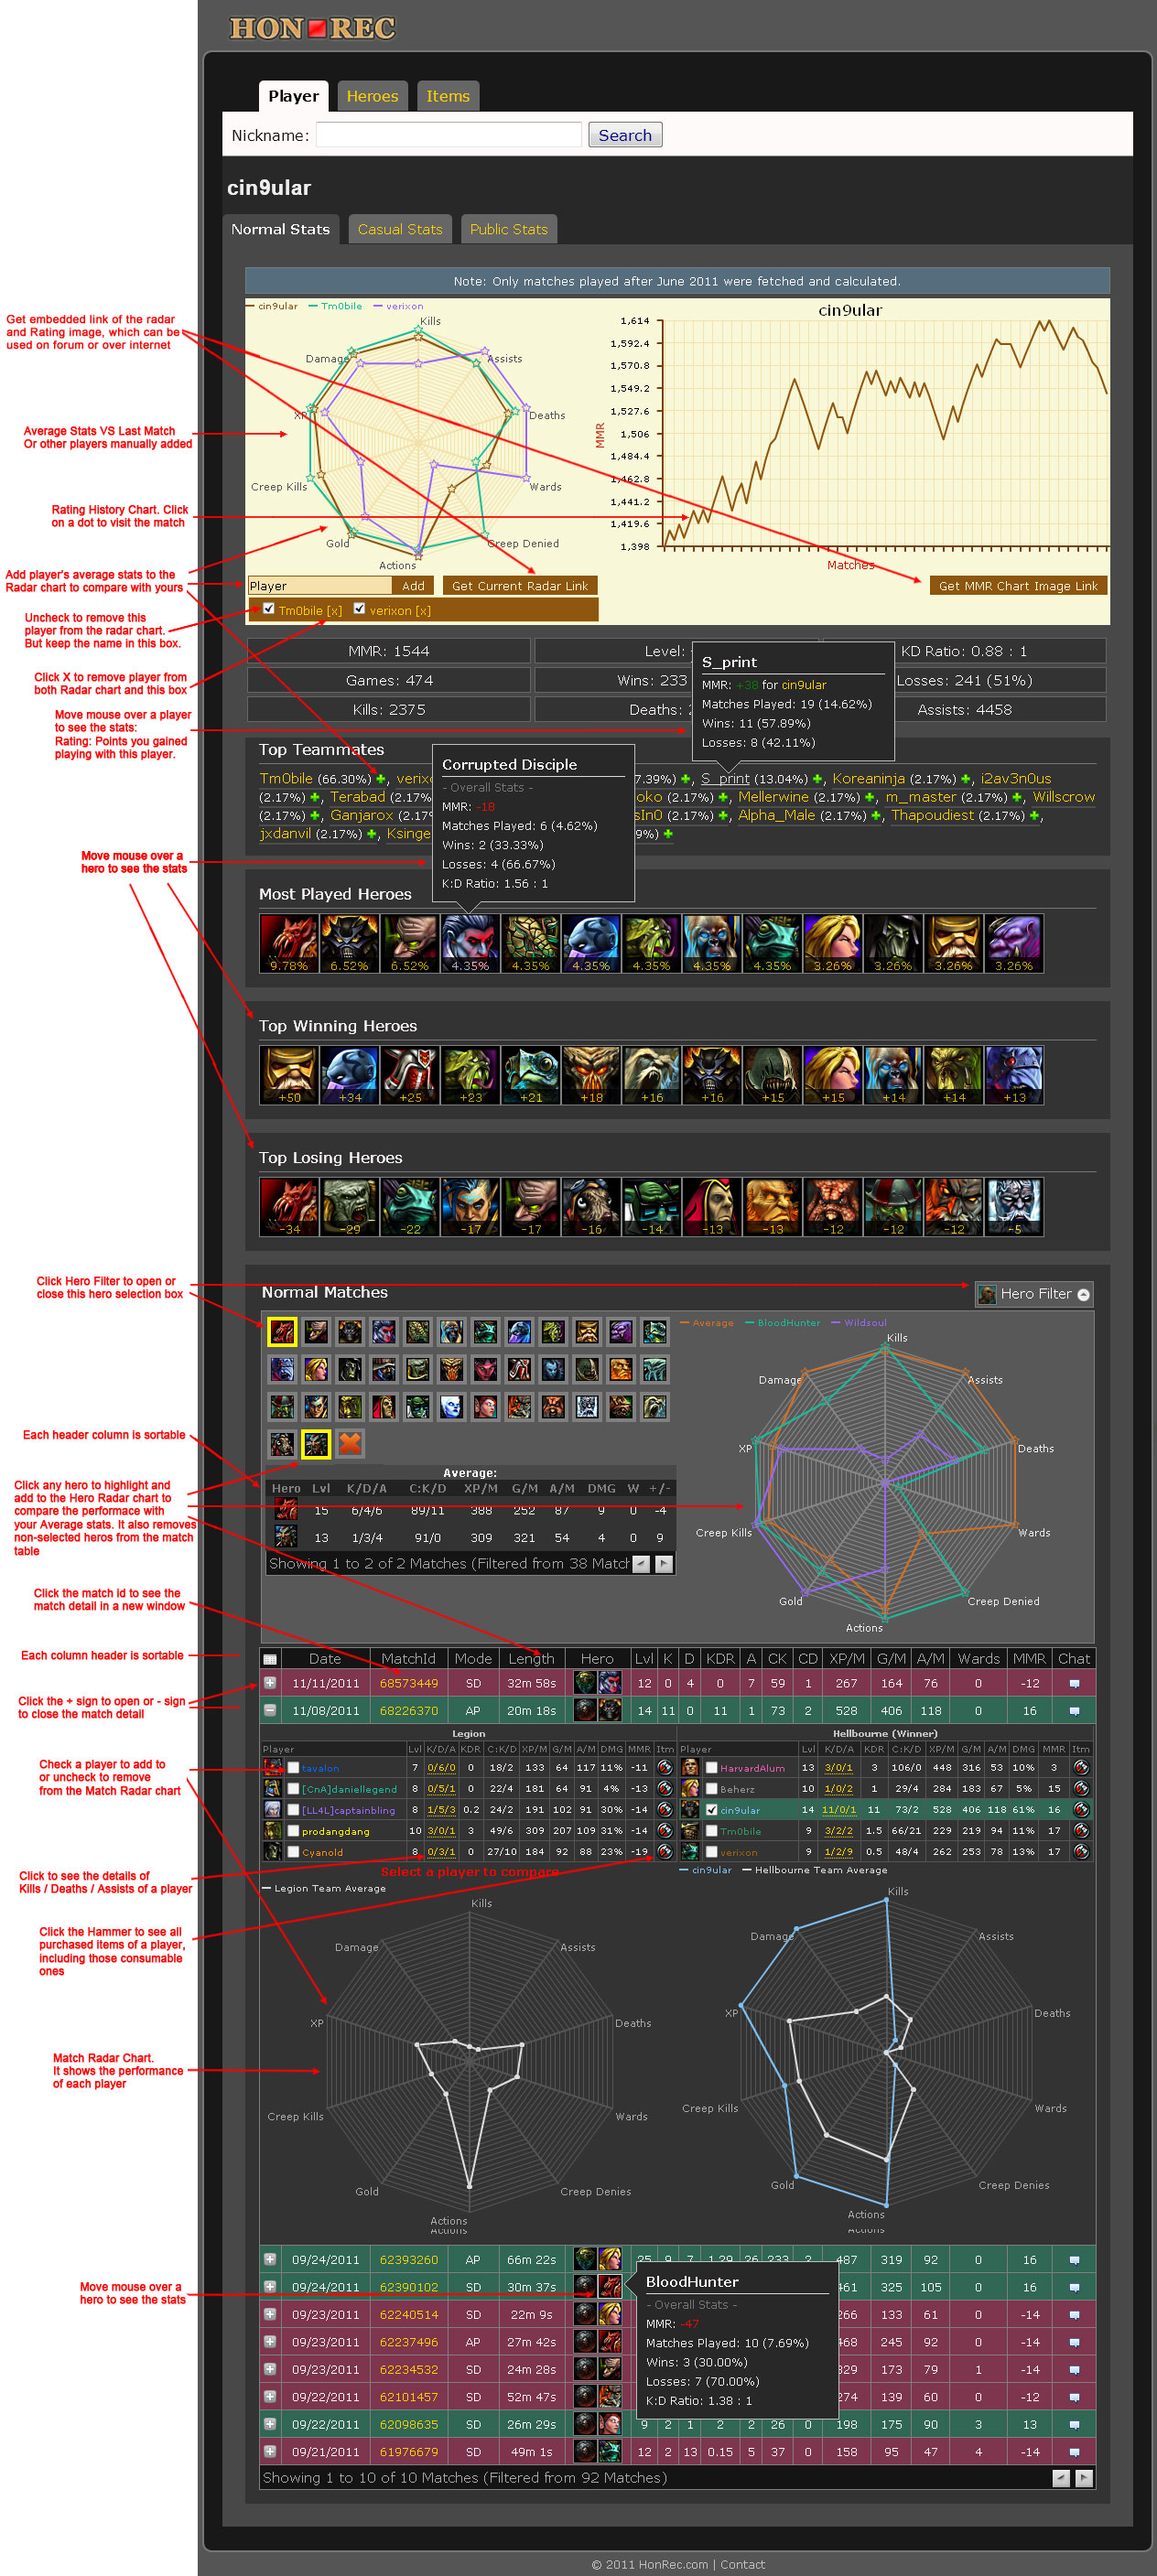 hon player stats gamereplays org rh gamereplays org Beginners Guide to Essential Oils Chart A Beginners Guide to Quilting